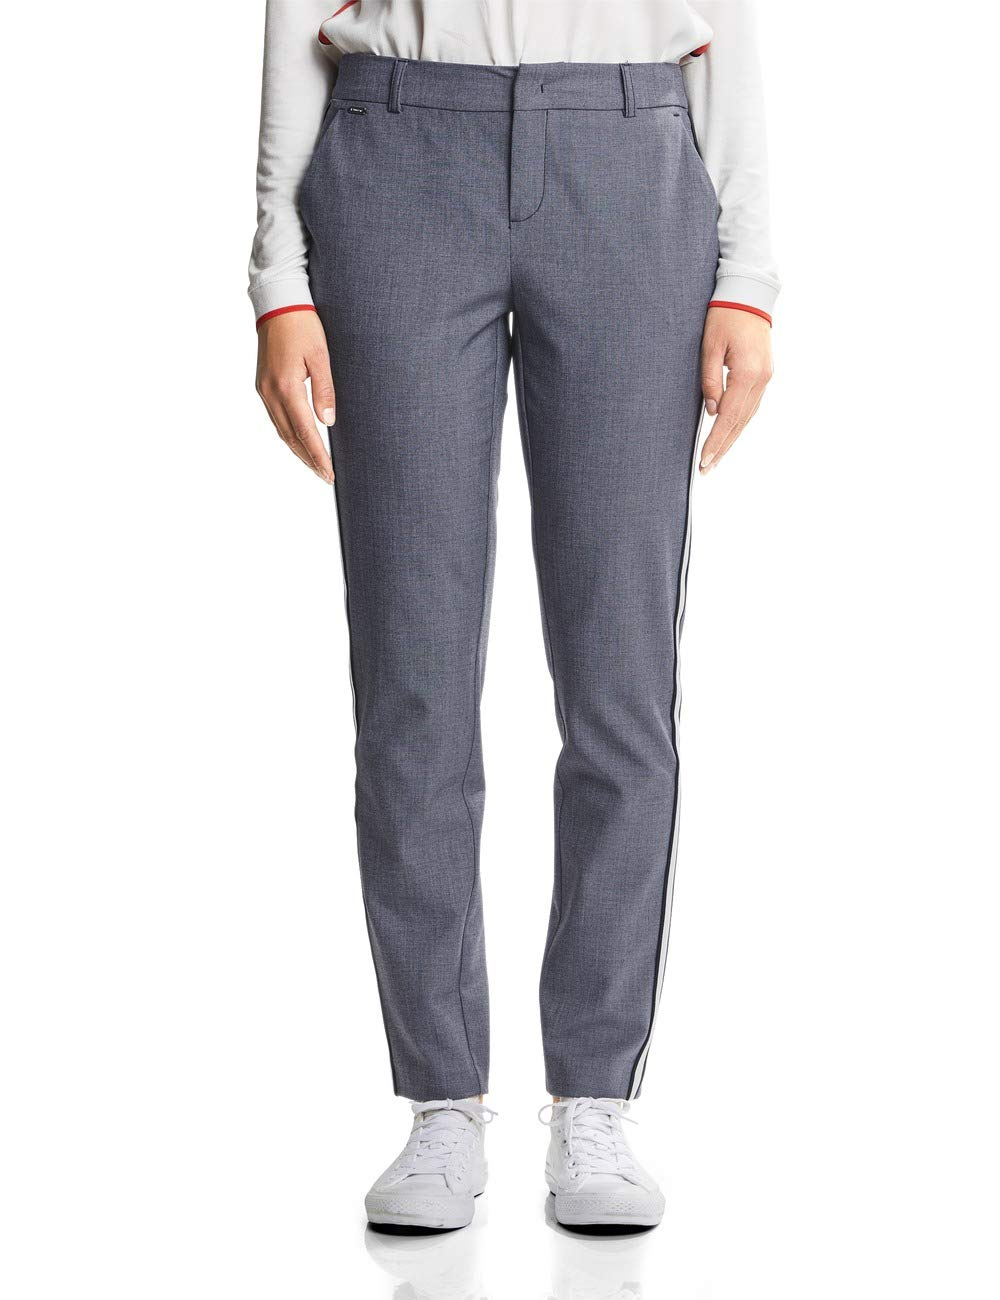 PantalonBleusailing Fabricant40Femme One 371866 l30taille Blue Jacky Street 10763W40 mNOwyv8n0P